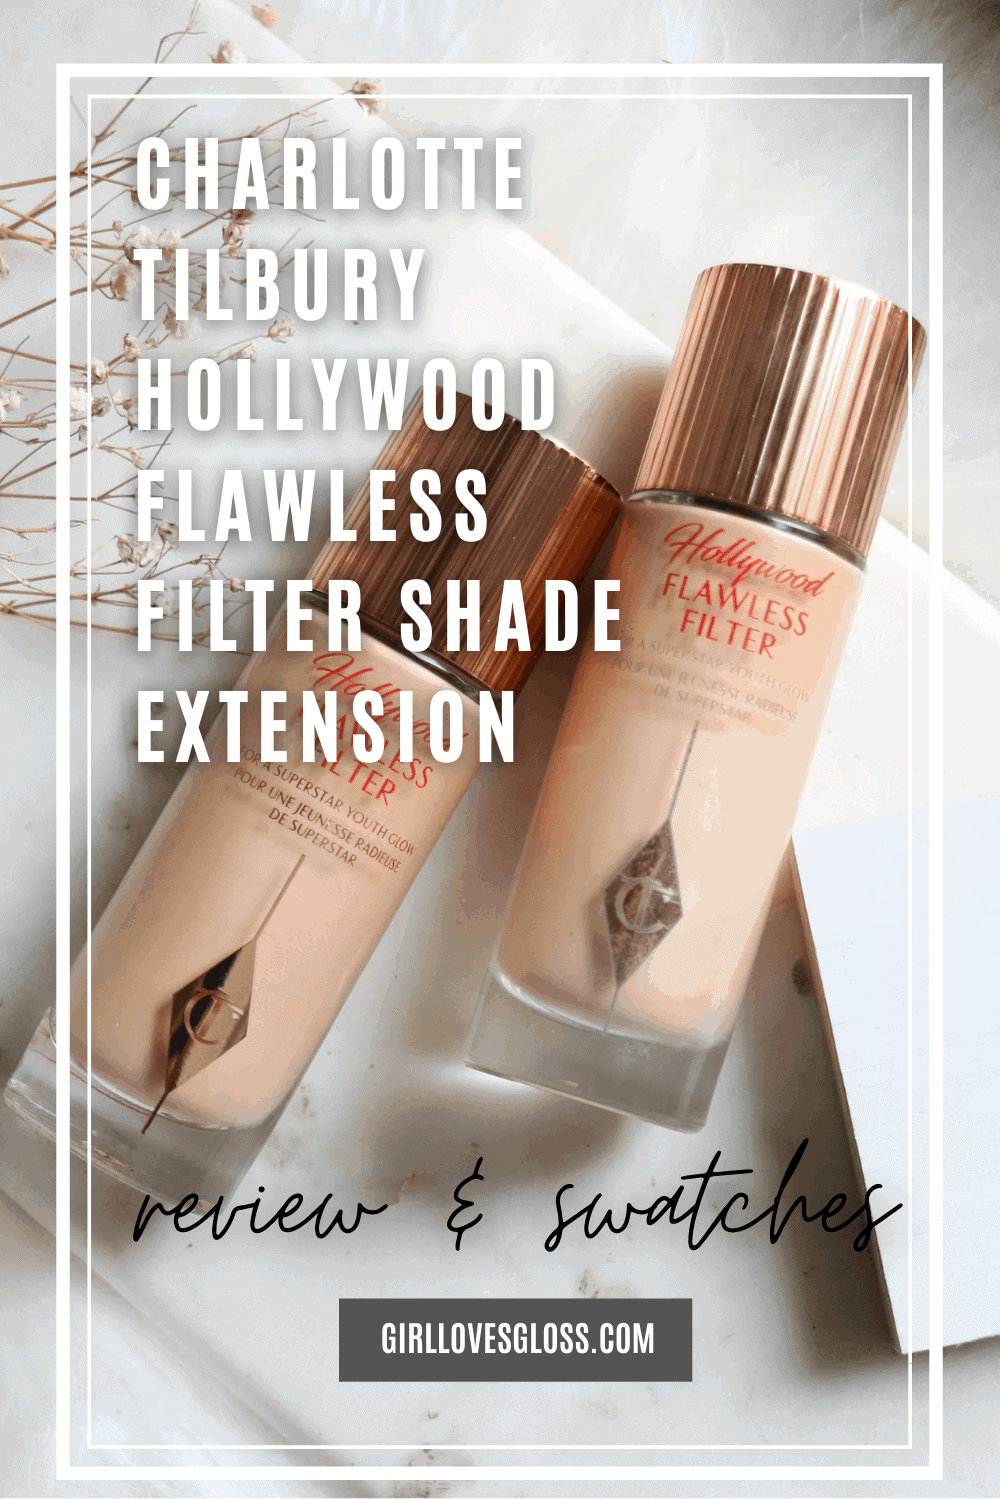 Charlotte Tilbury Hollywood Flawless Filter Review and Shade Extensions 2 vs 2.5